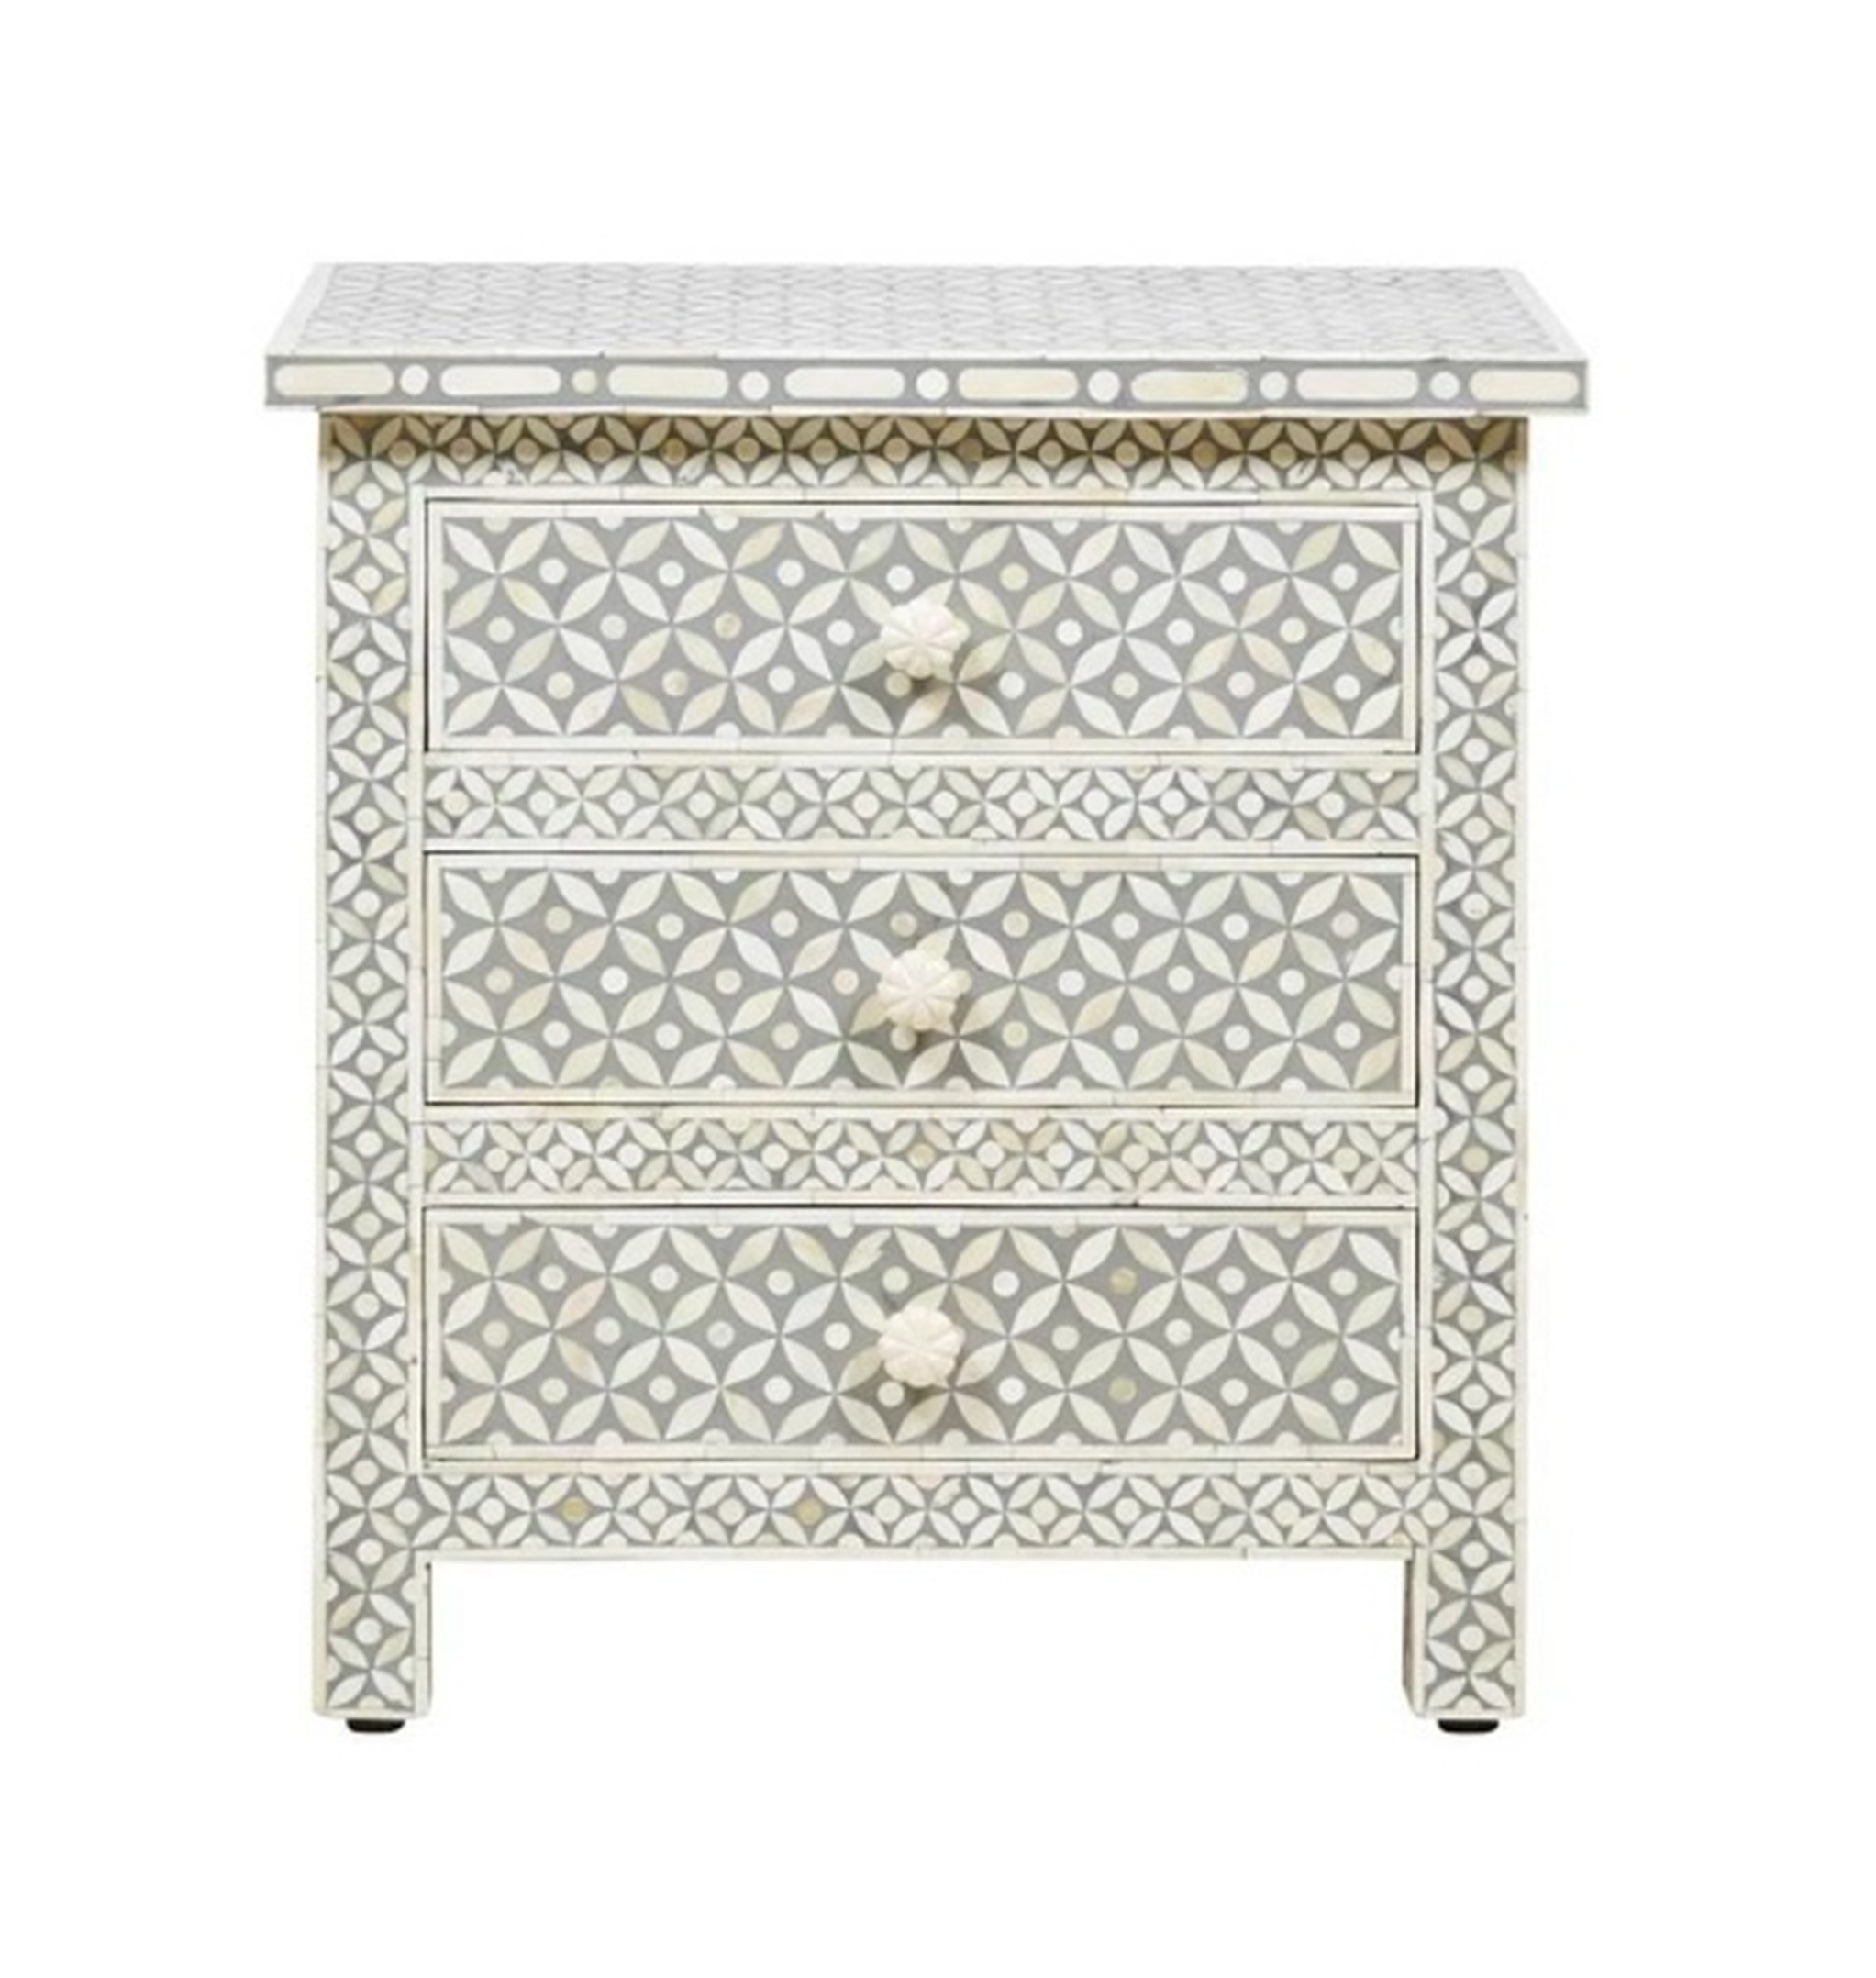 Bone Inlay 3 Drawer Large Bedside Table Geometric Design In Light Grey Color